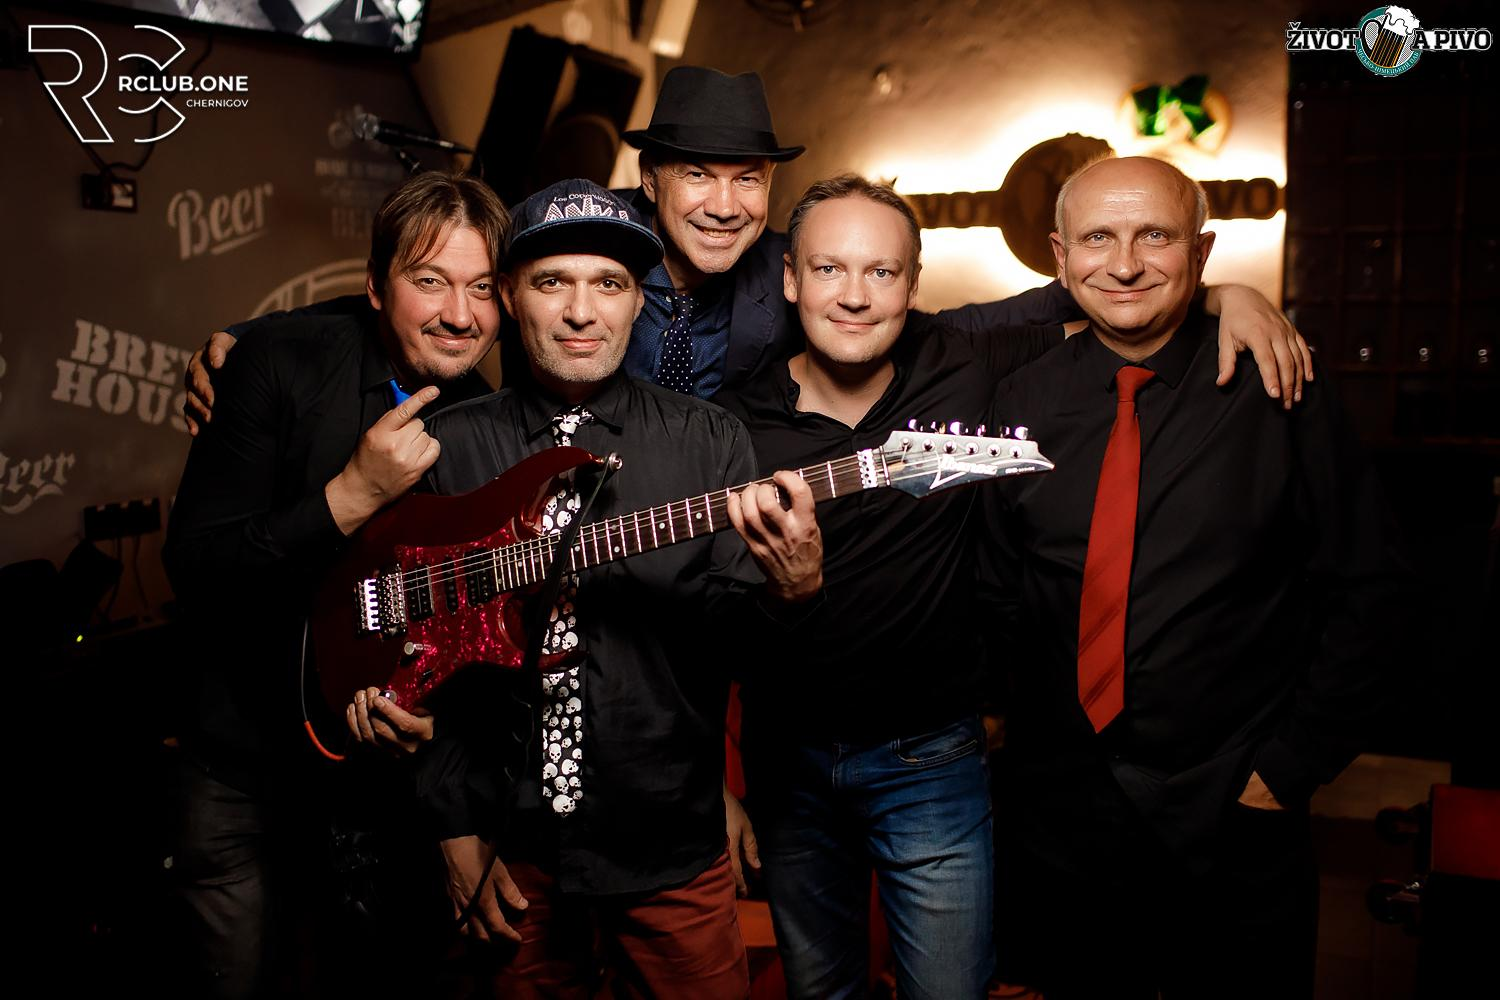 Hit-off band in Zivot a pivo